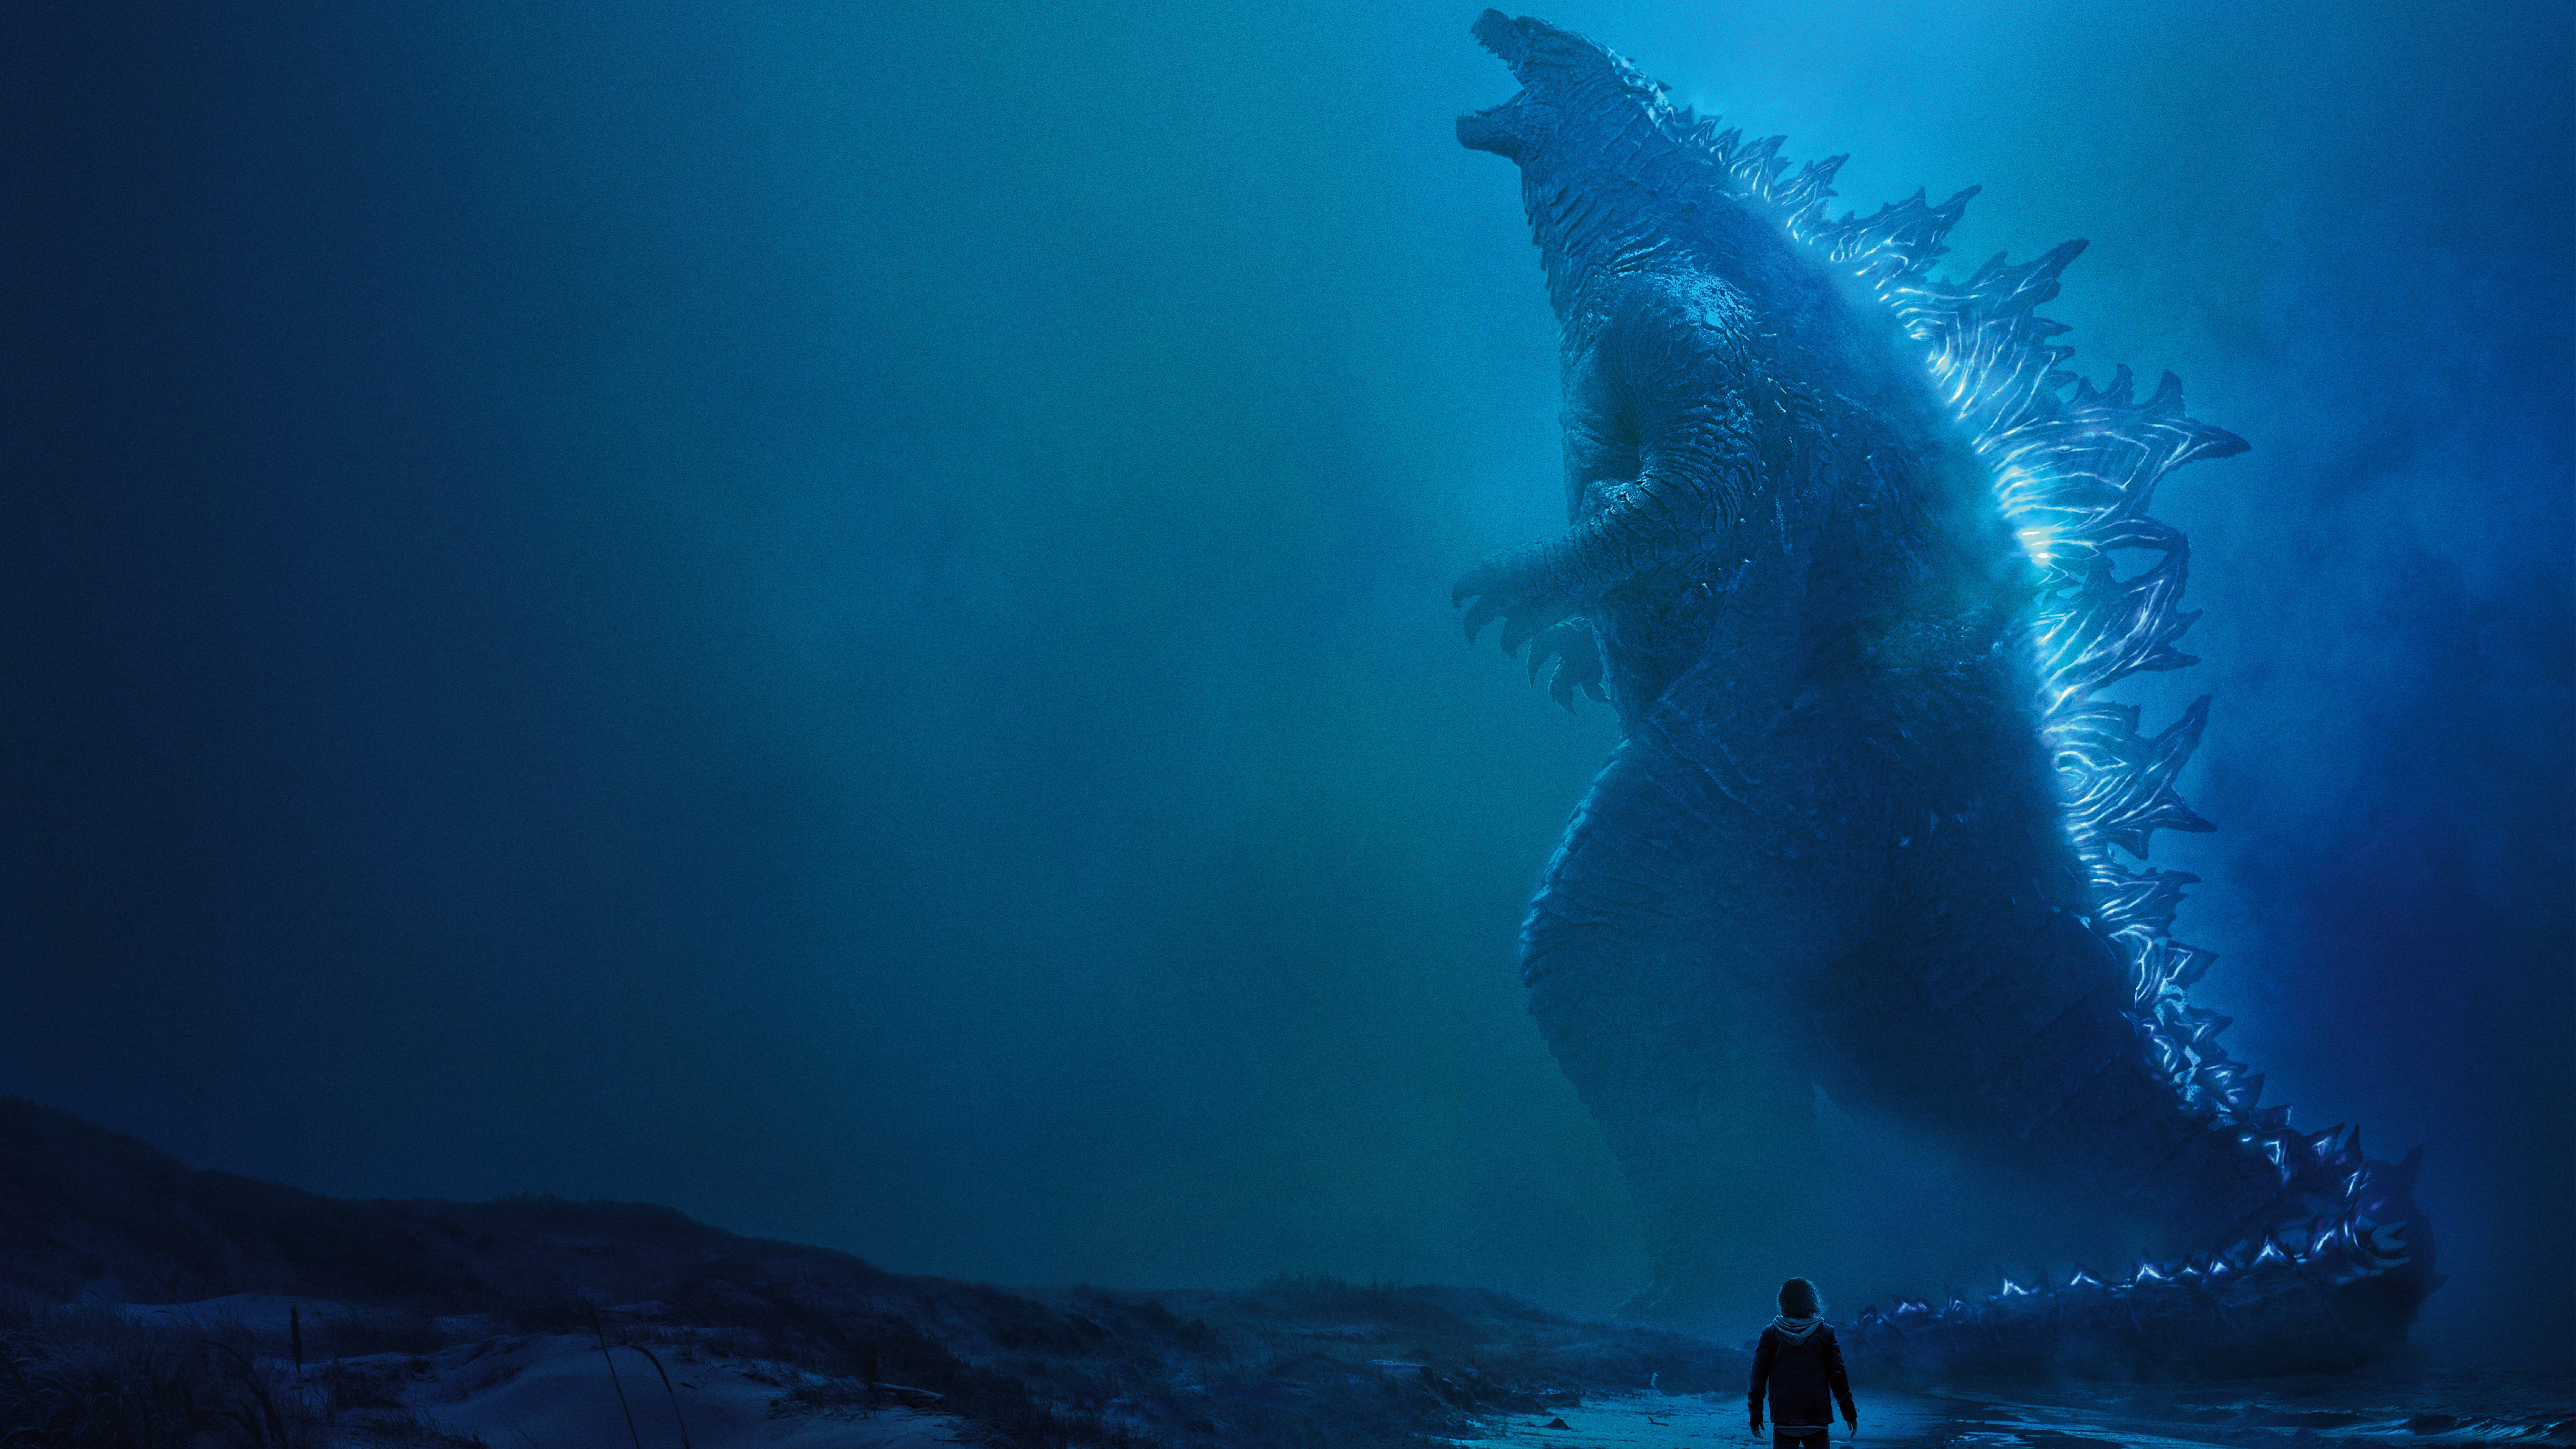 7680x4320 Godzilla King Of The Monsters 8k 8k Hd 4k Wallpapers Images Backgrounds Photos And Pictures